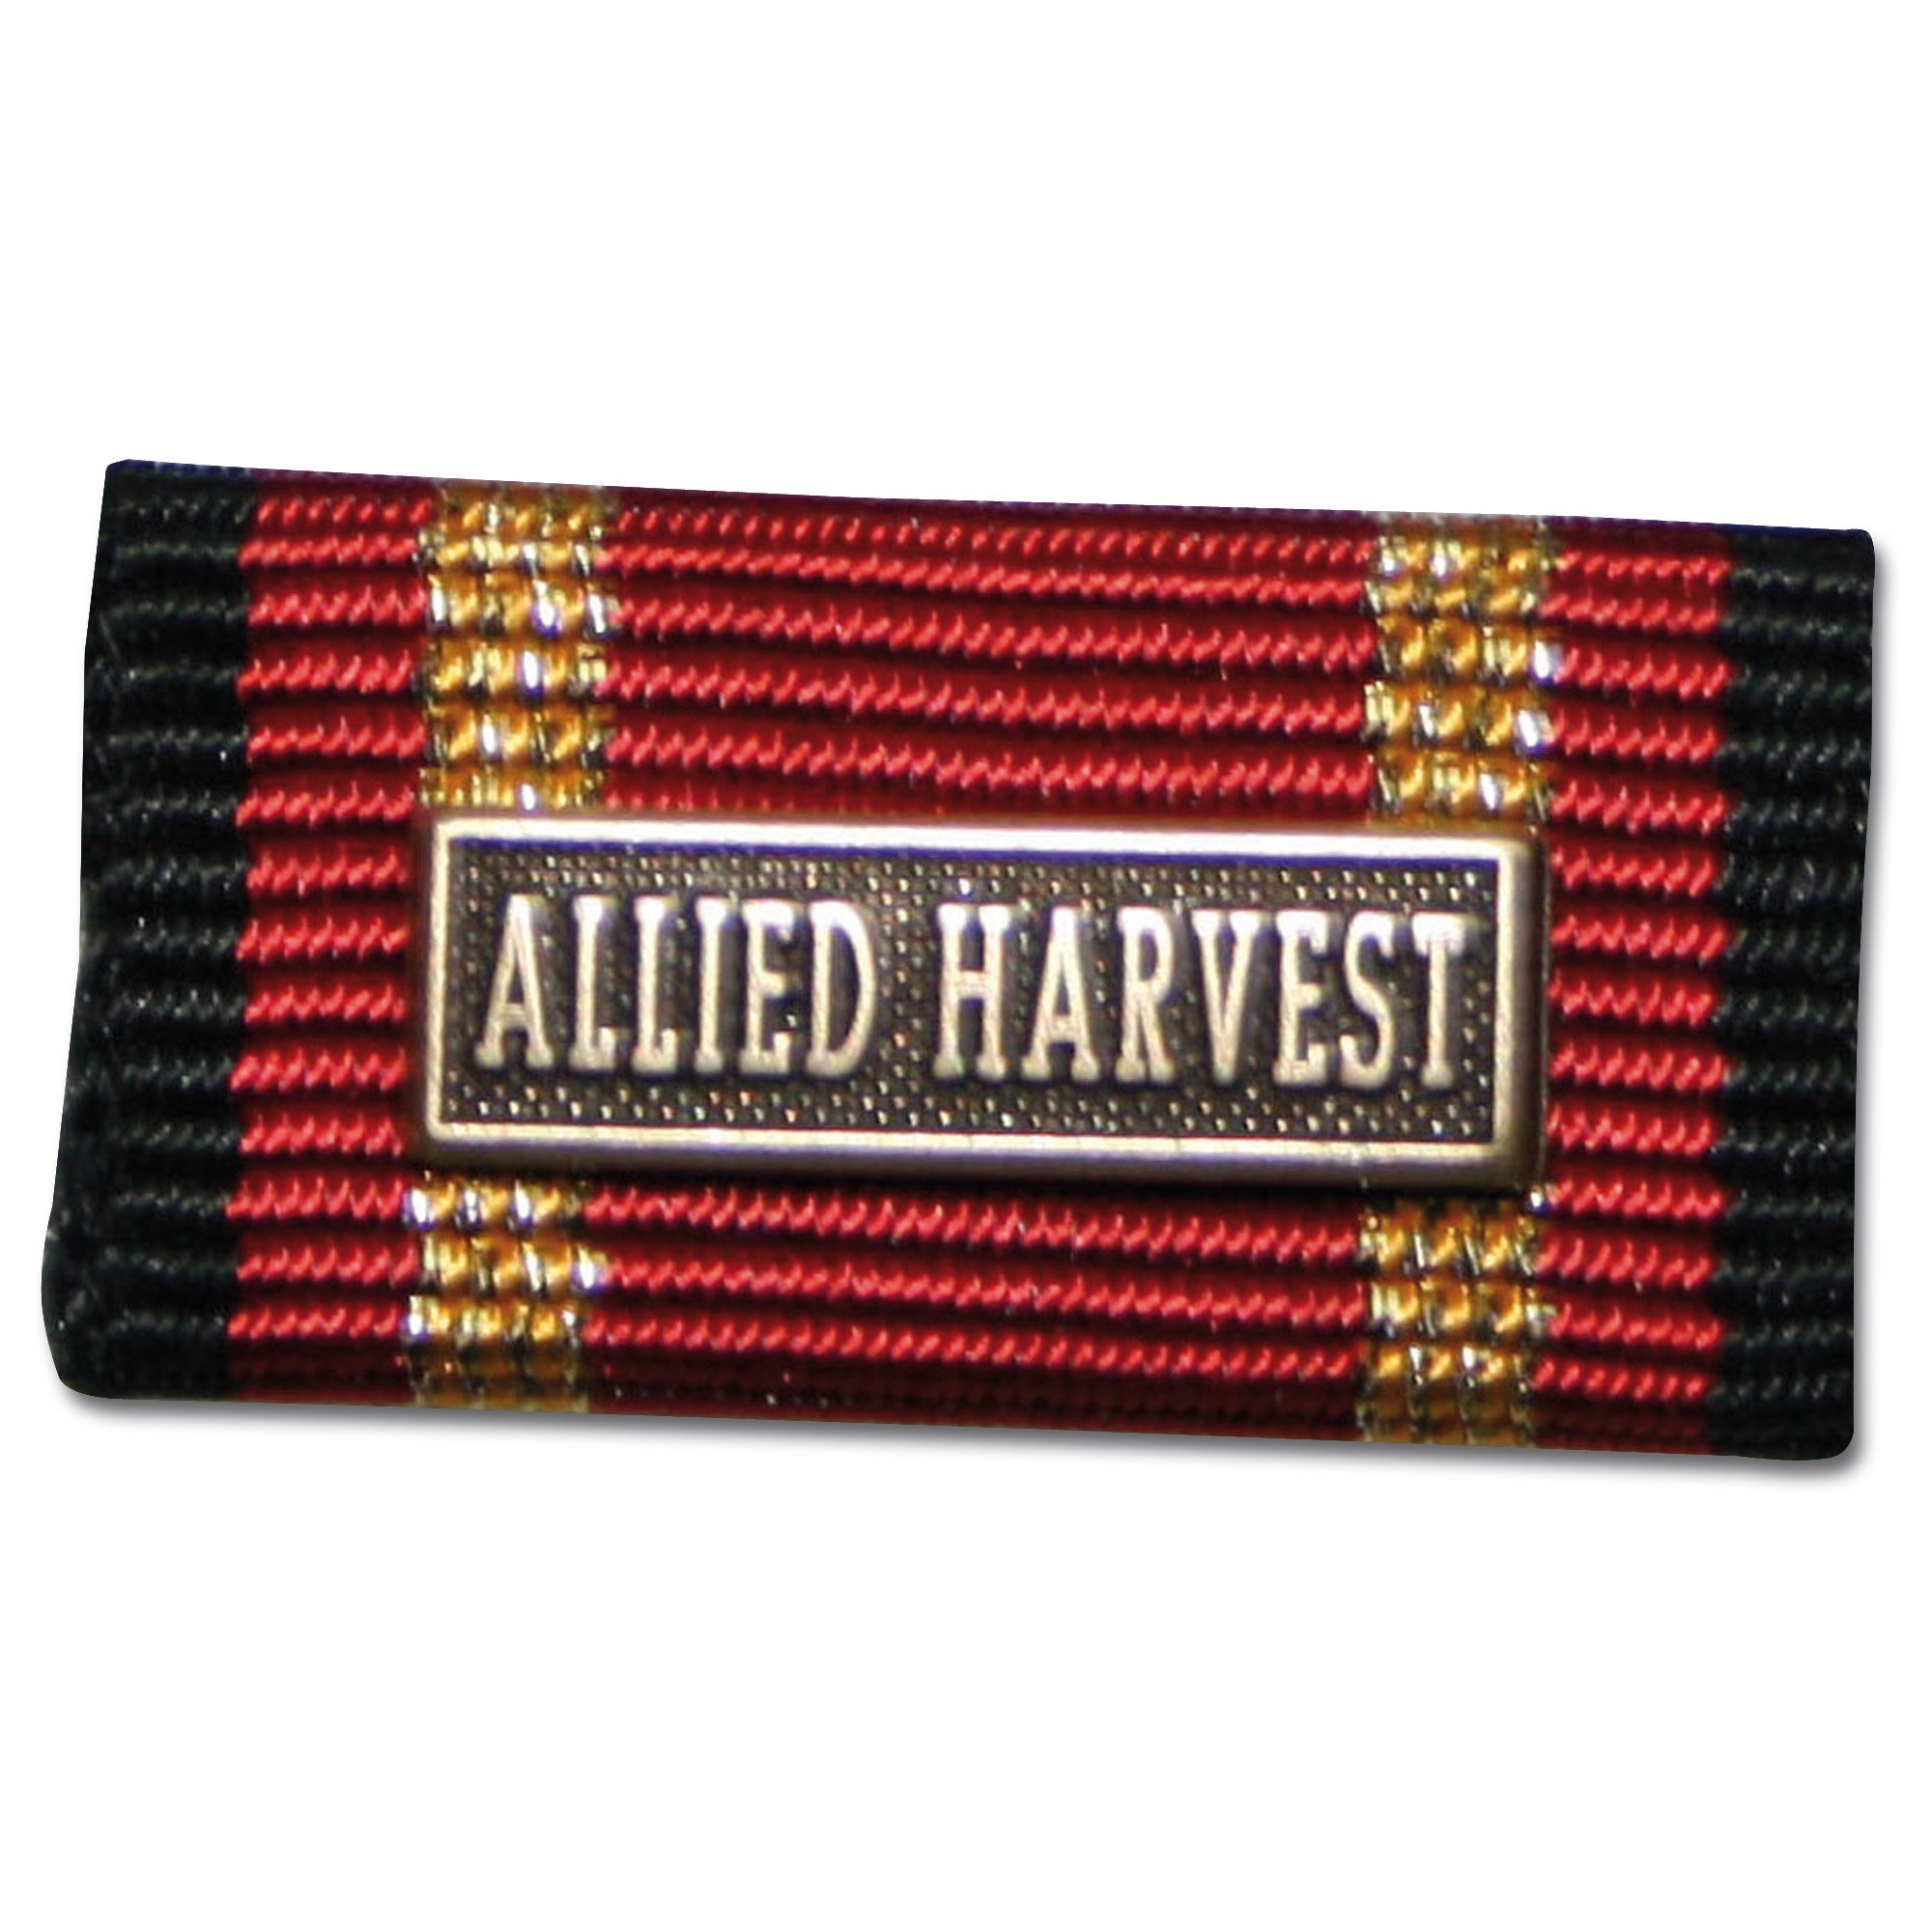 Ordensspange Auslandseinsatz ALLIED HARVEST bronze